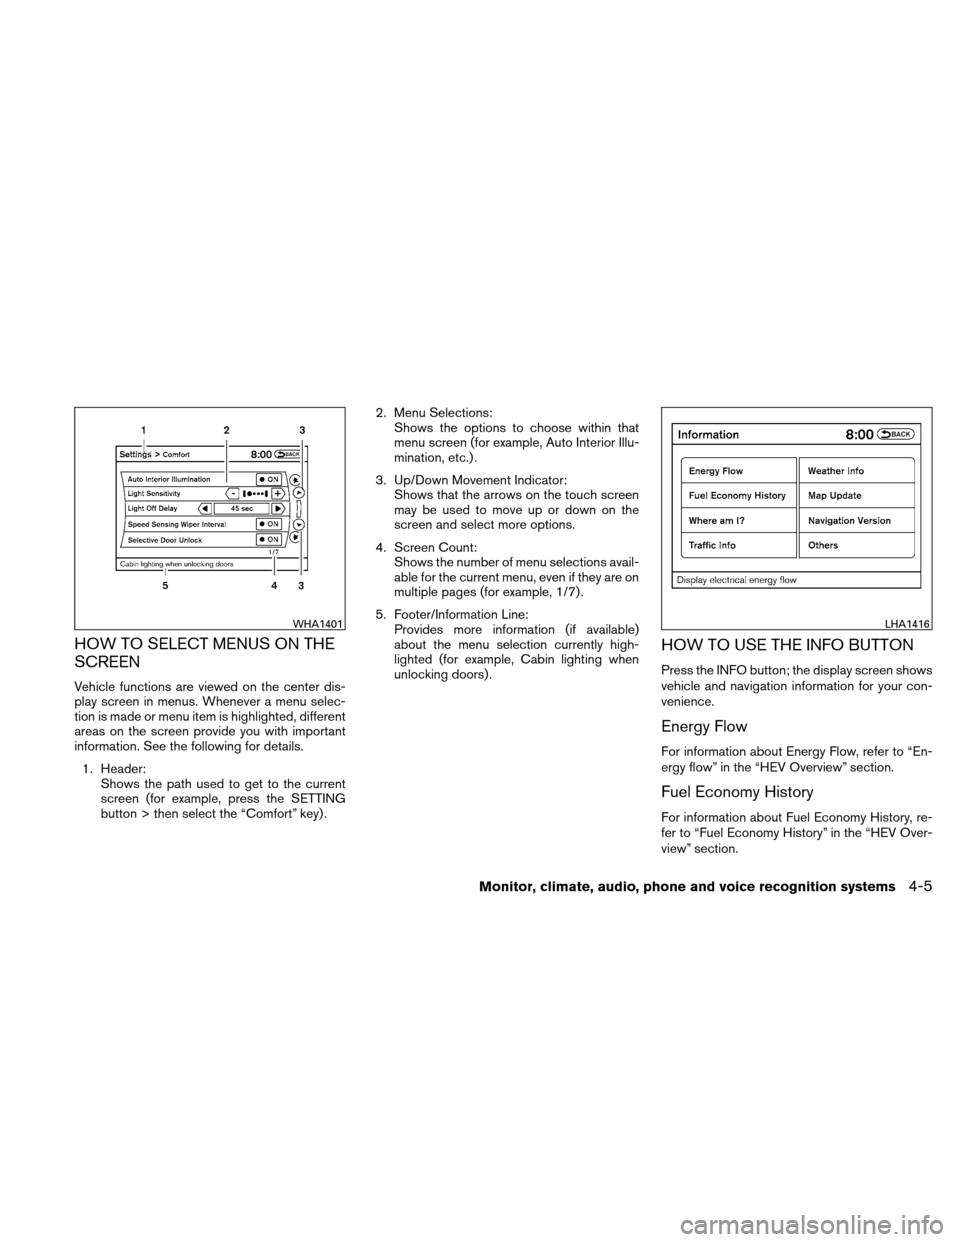 NISSAN ALTIMA HYBRID 2010 L32A / 4.G Owners Manual, Page 164